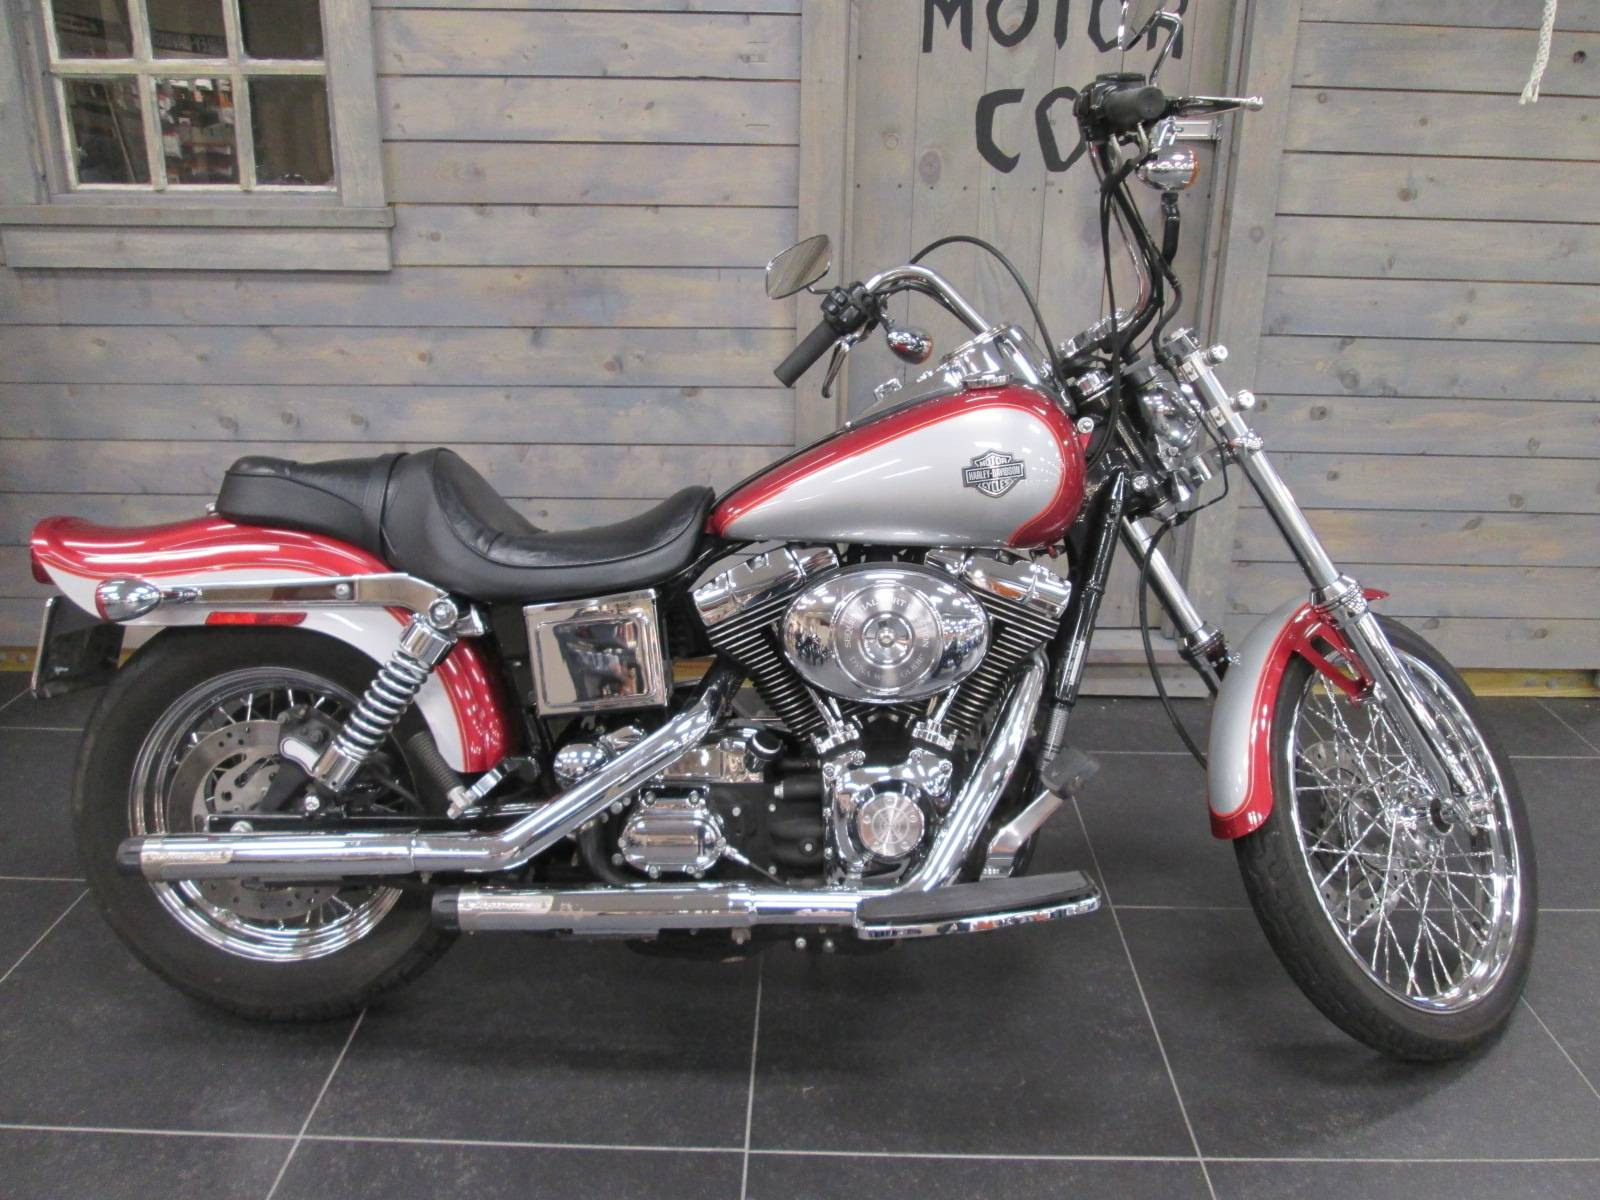 2005 Harley-Davidson FXDWG/FXDWGI Dyna Wide Glide® in Lafayette, Indiana - Photo 1